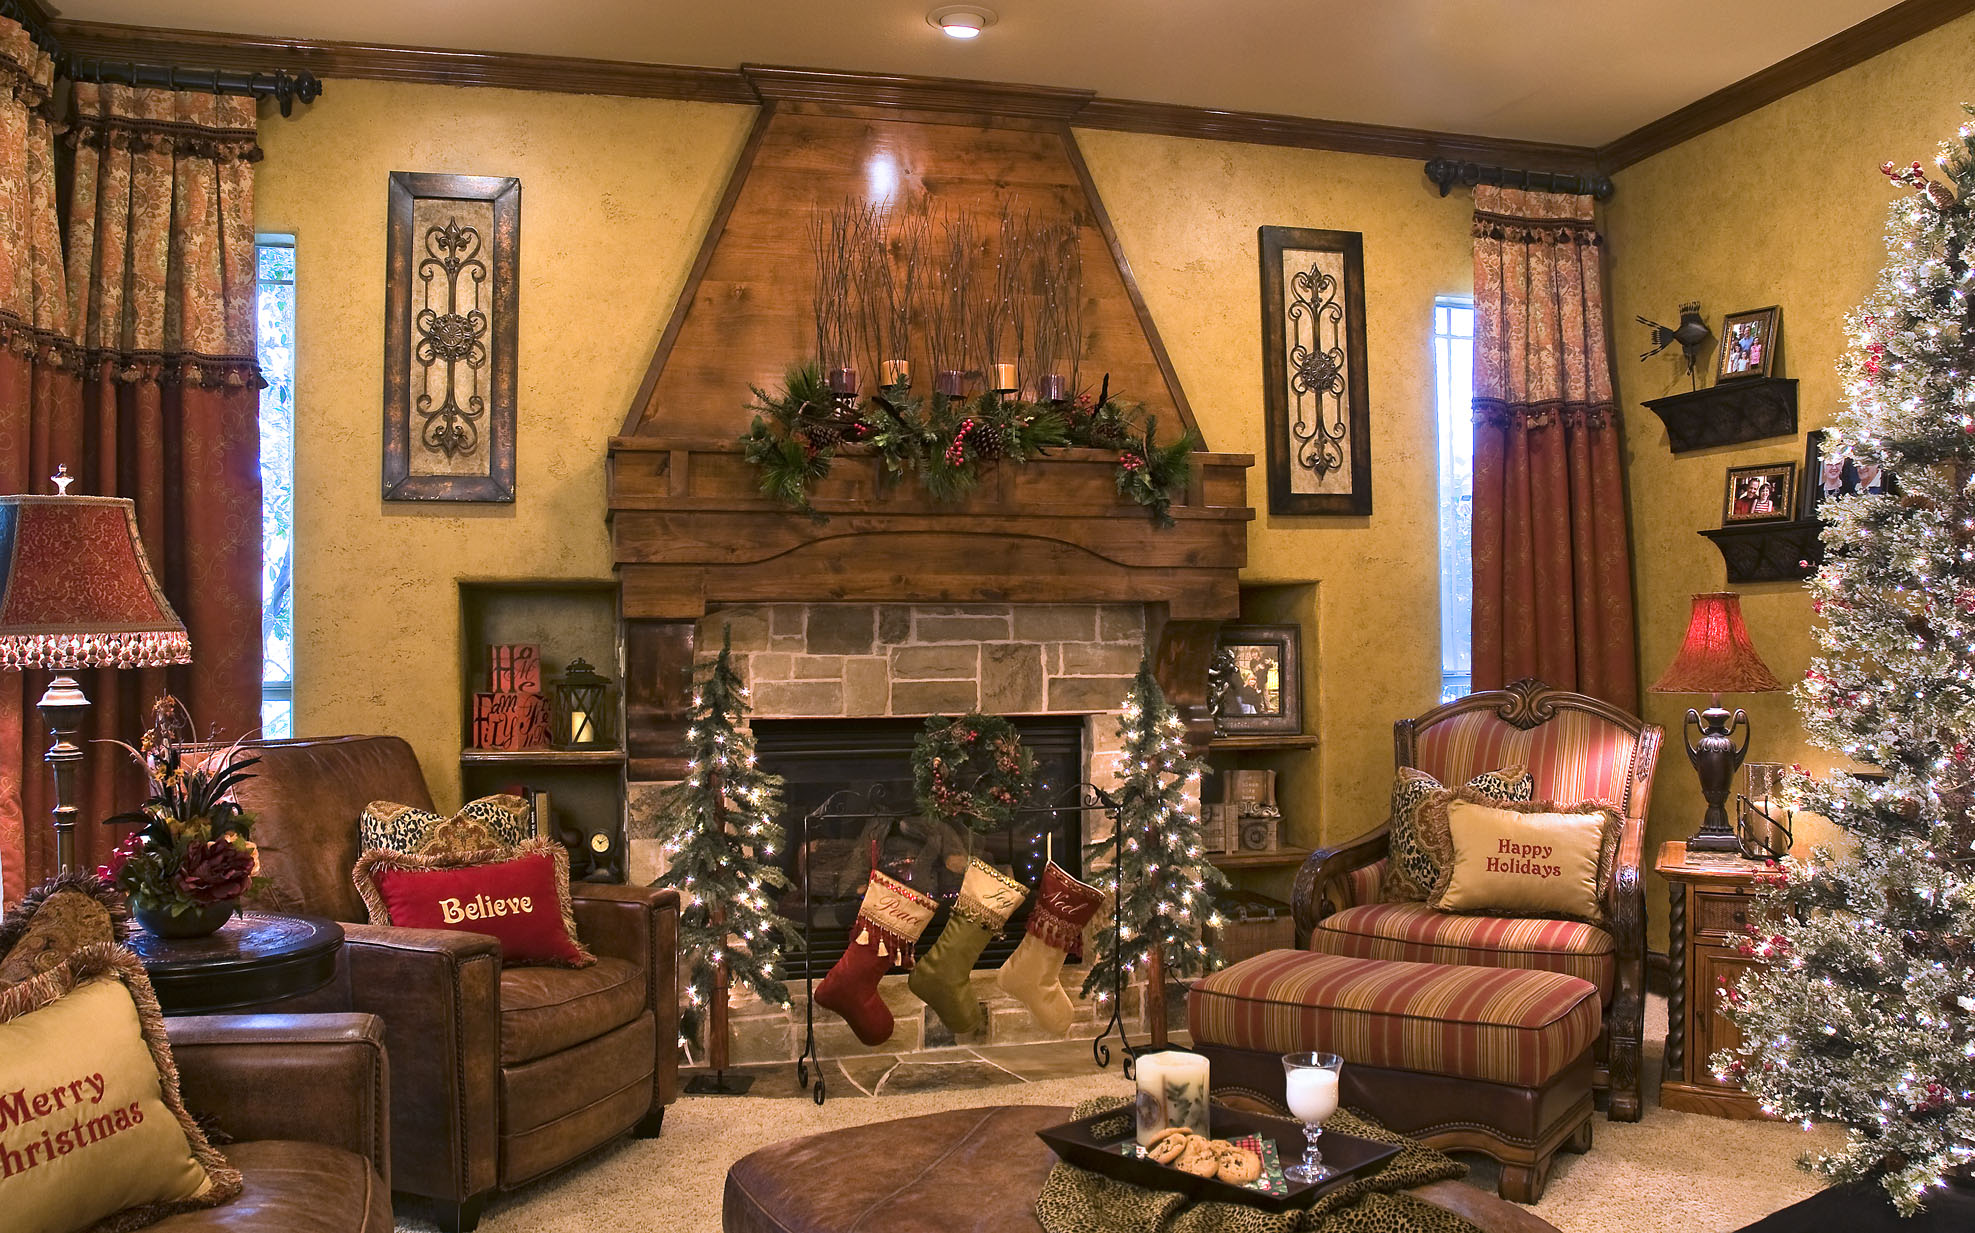 Create some holiday decorating magic decorating den Den decorating ideas photos